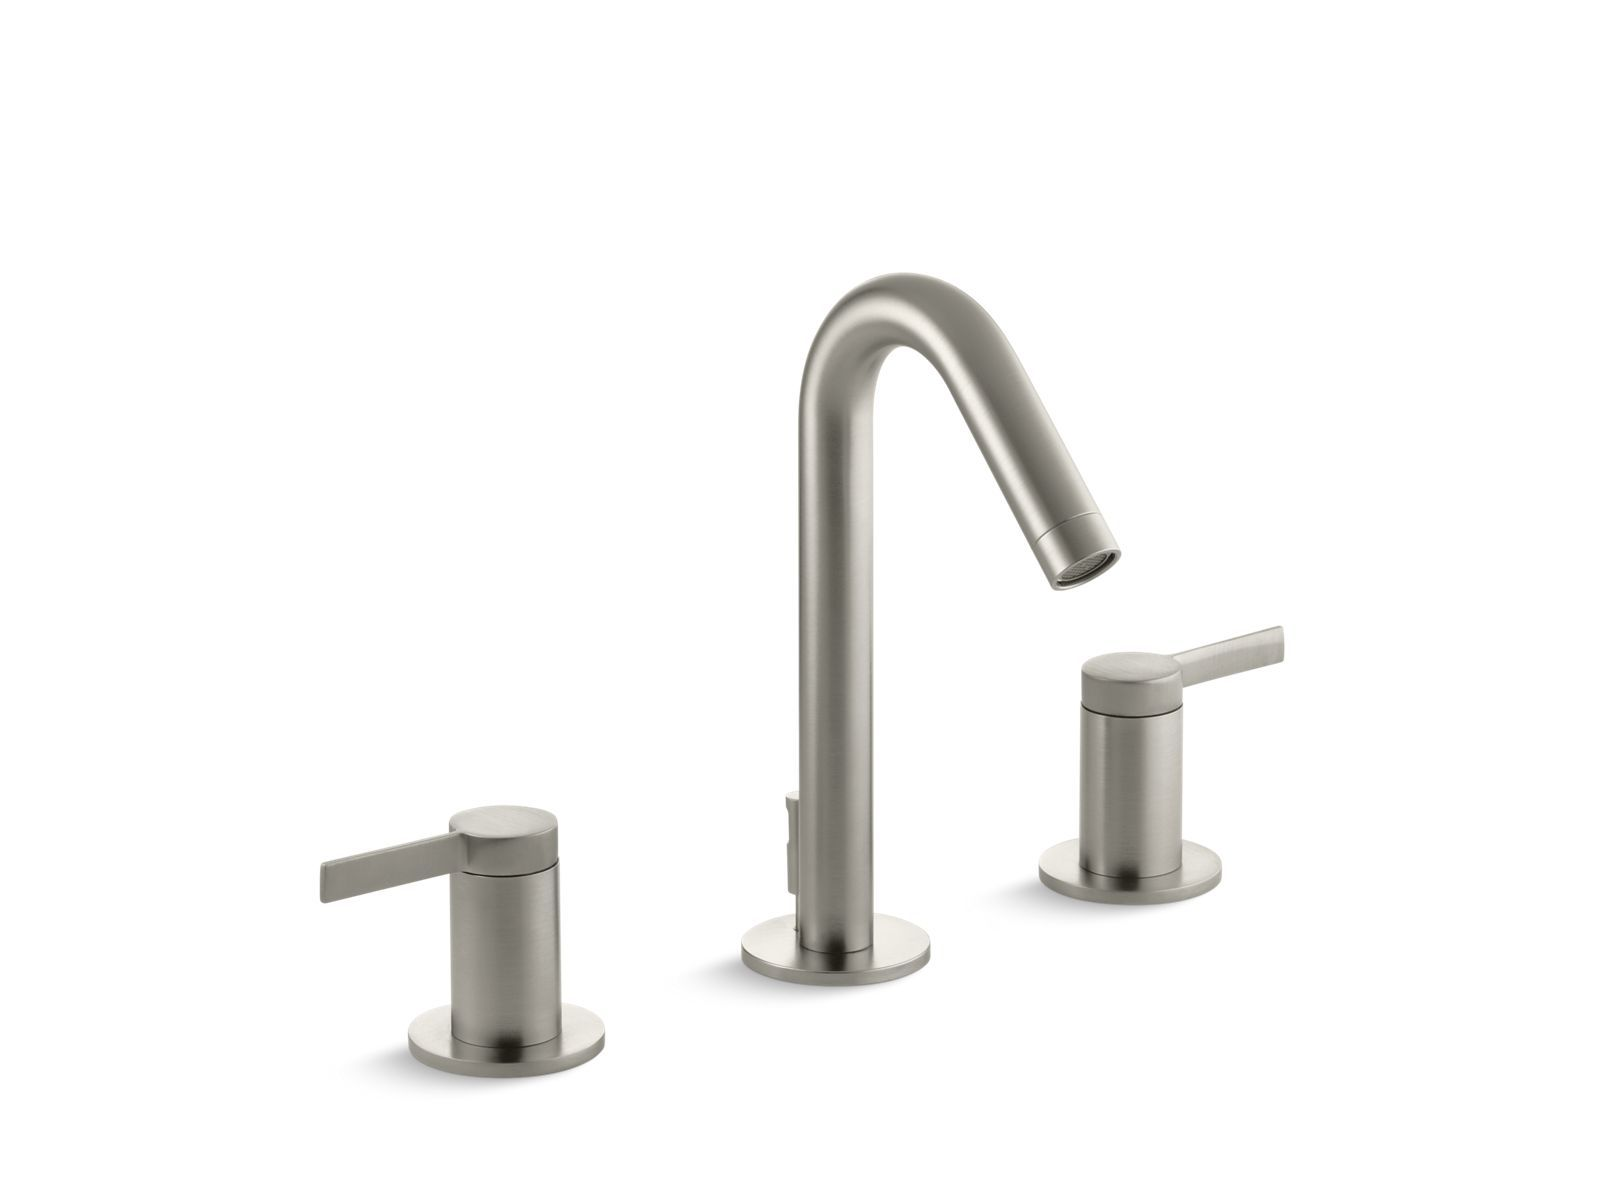 Stillness Widespread Bathroom Sink Faucet | K-942-4 | KOHLER ...